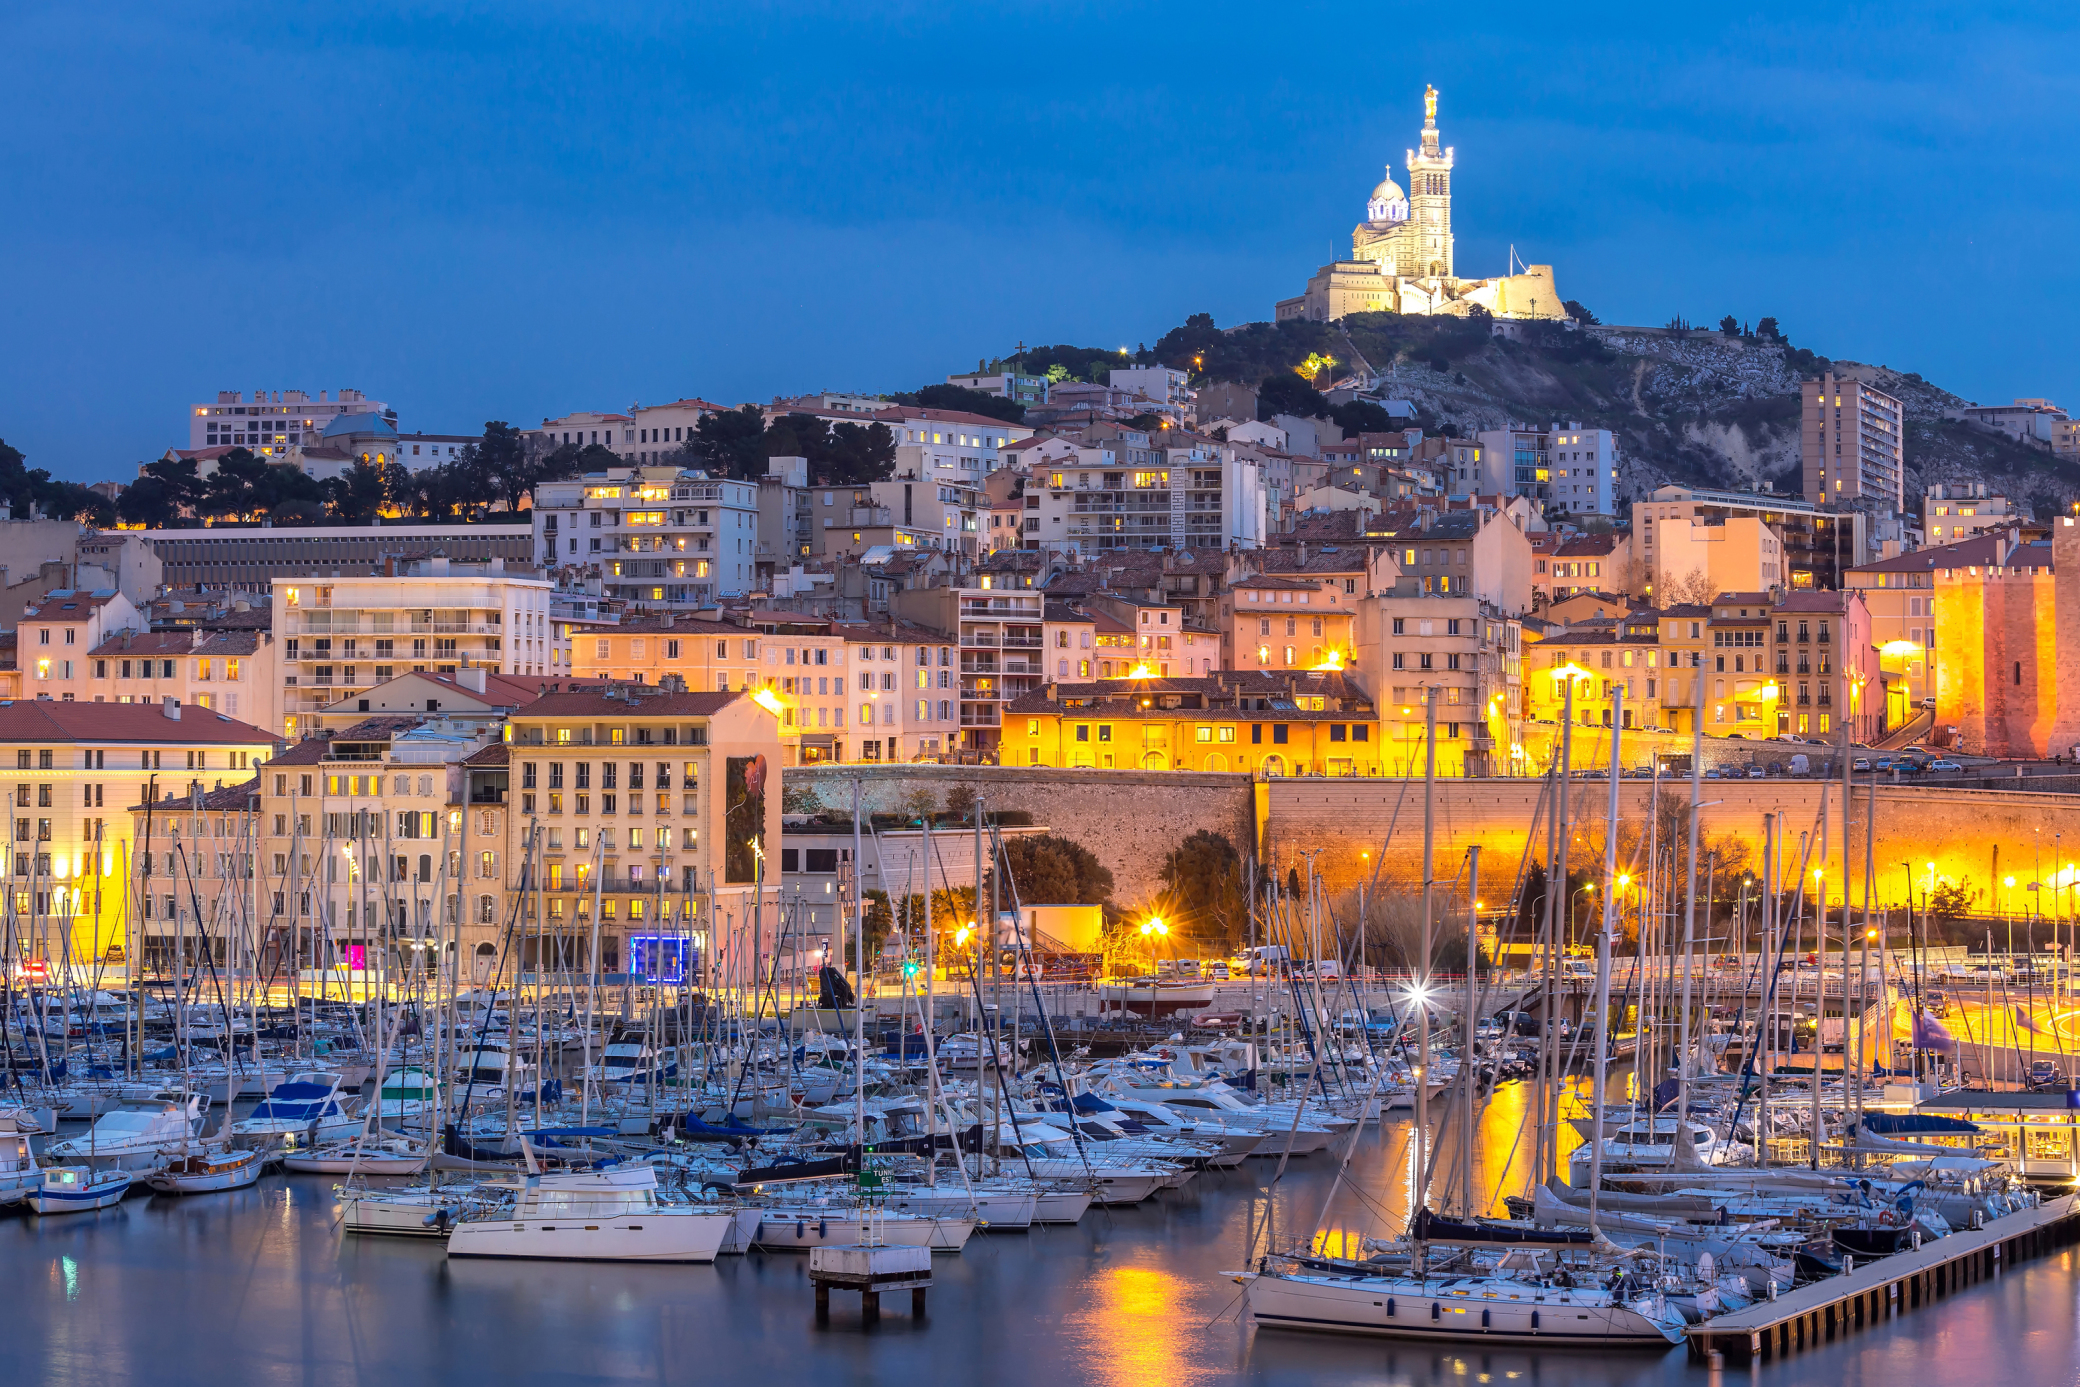 Vieux port marseille france attractions lonely planet - Mcdo vieux port marseille ...